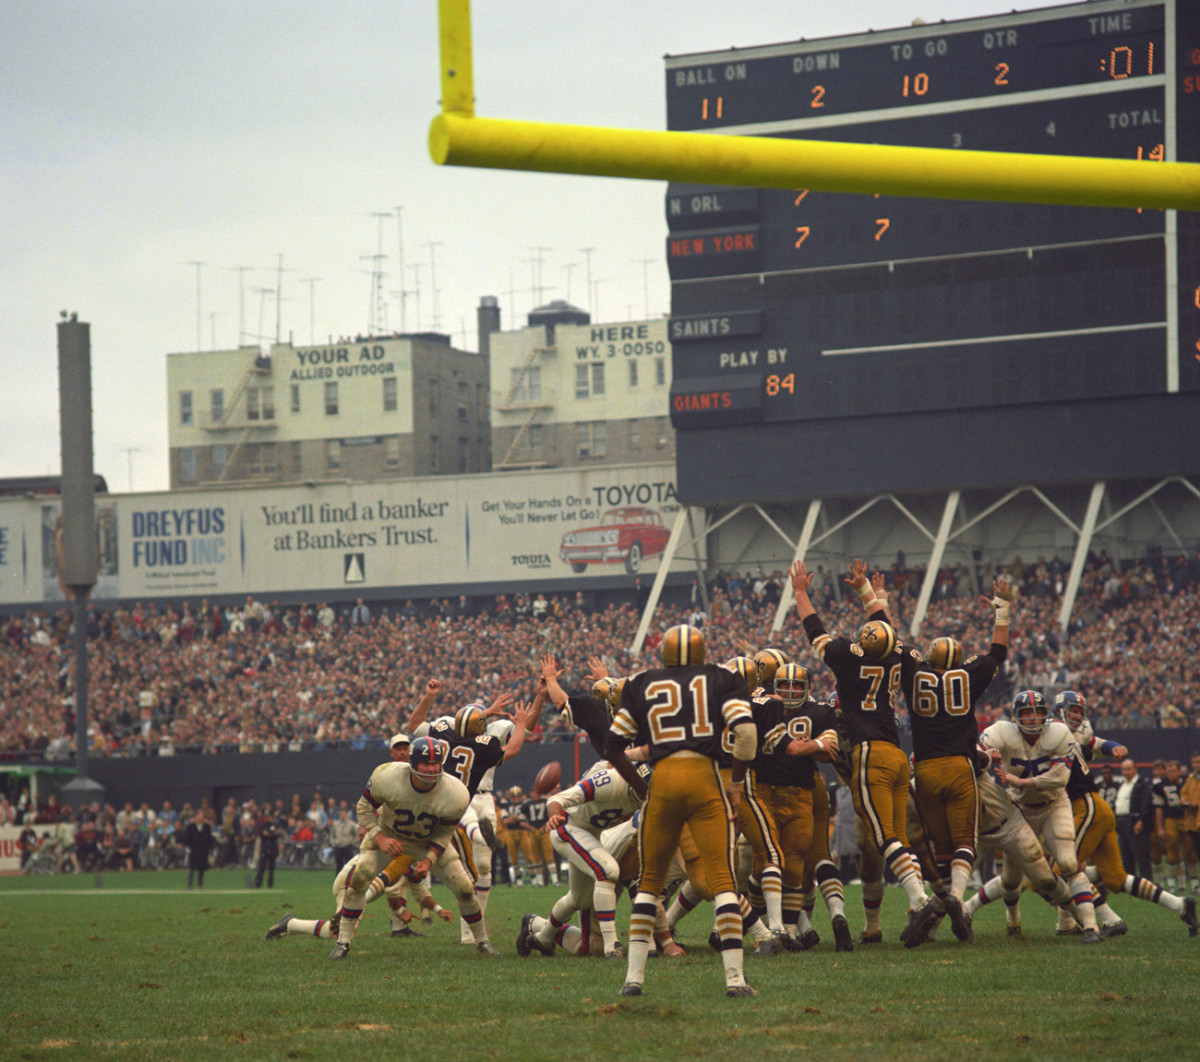 Calm before the storm: Saints-Giants at Yankee Stadium, October 1967.